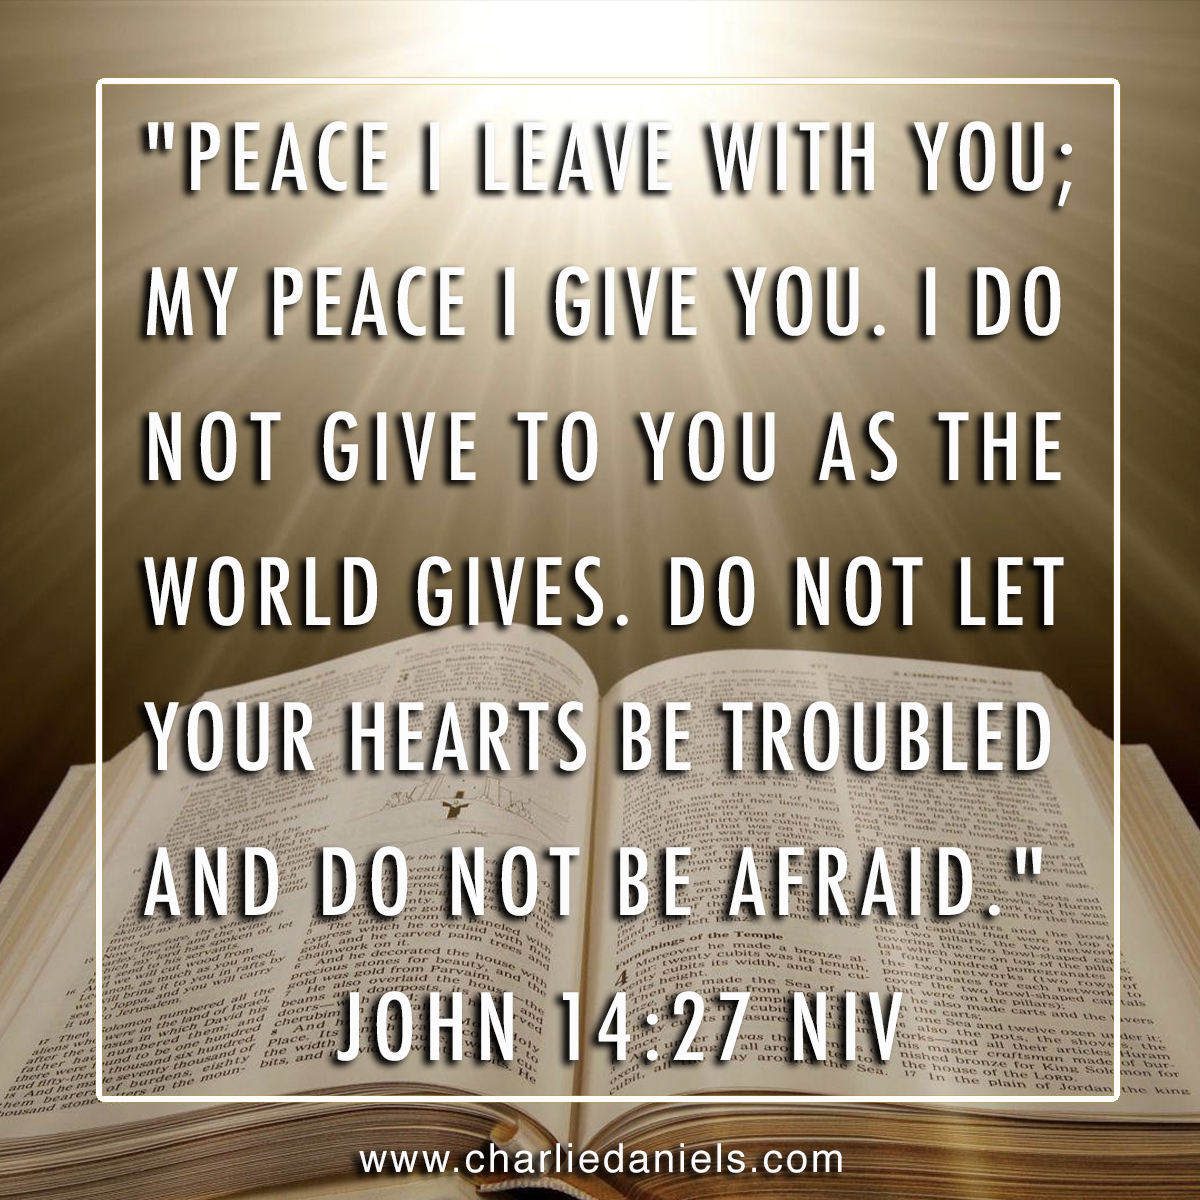 """Peace I leave with you; my peace I give you. I do not give to you as the world gives. Do not let your hearts be troubled and do not be afraid."""" - John 14:27 NIV"""